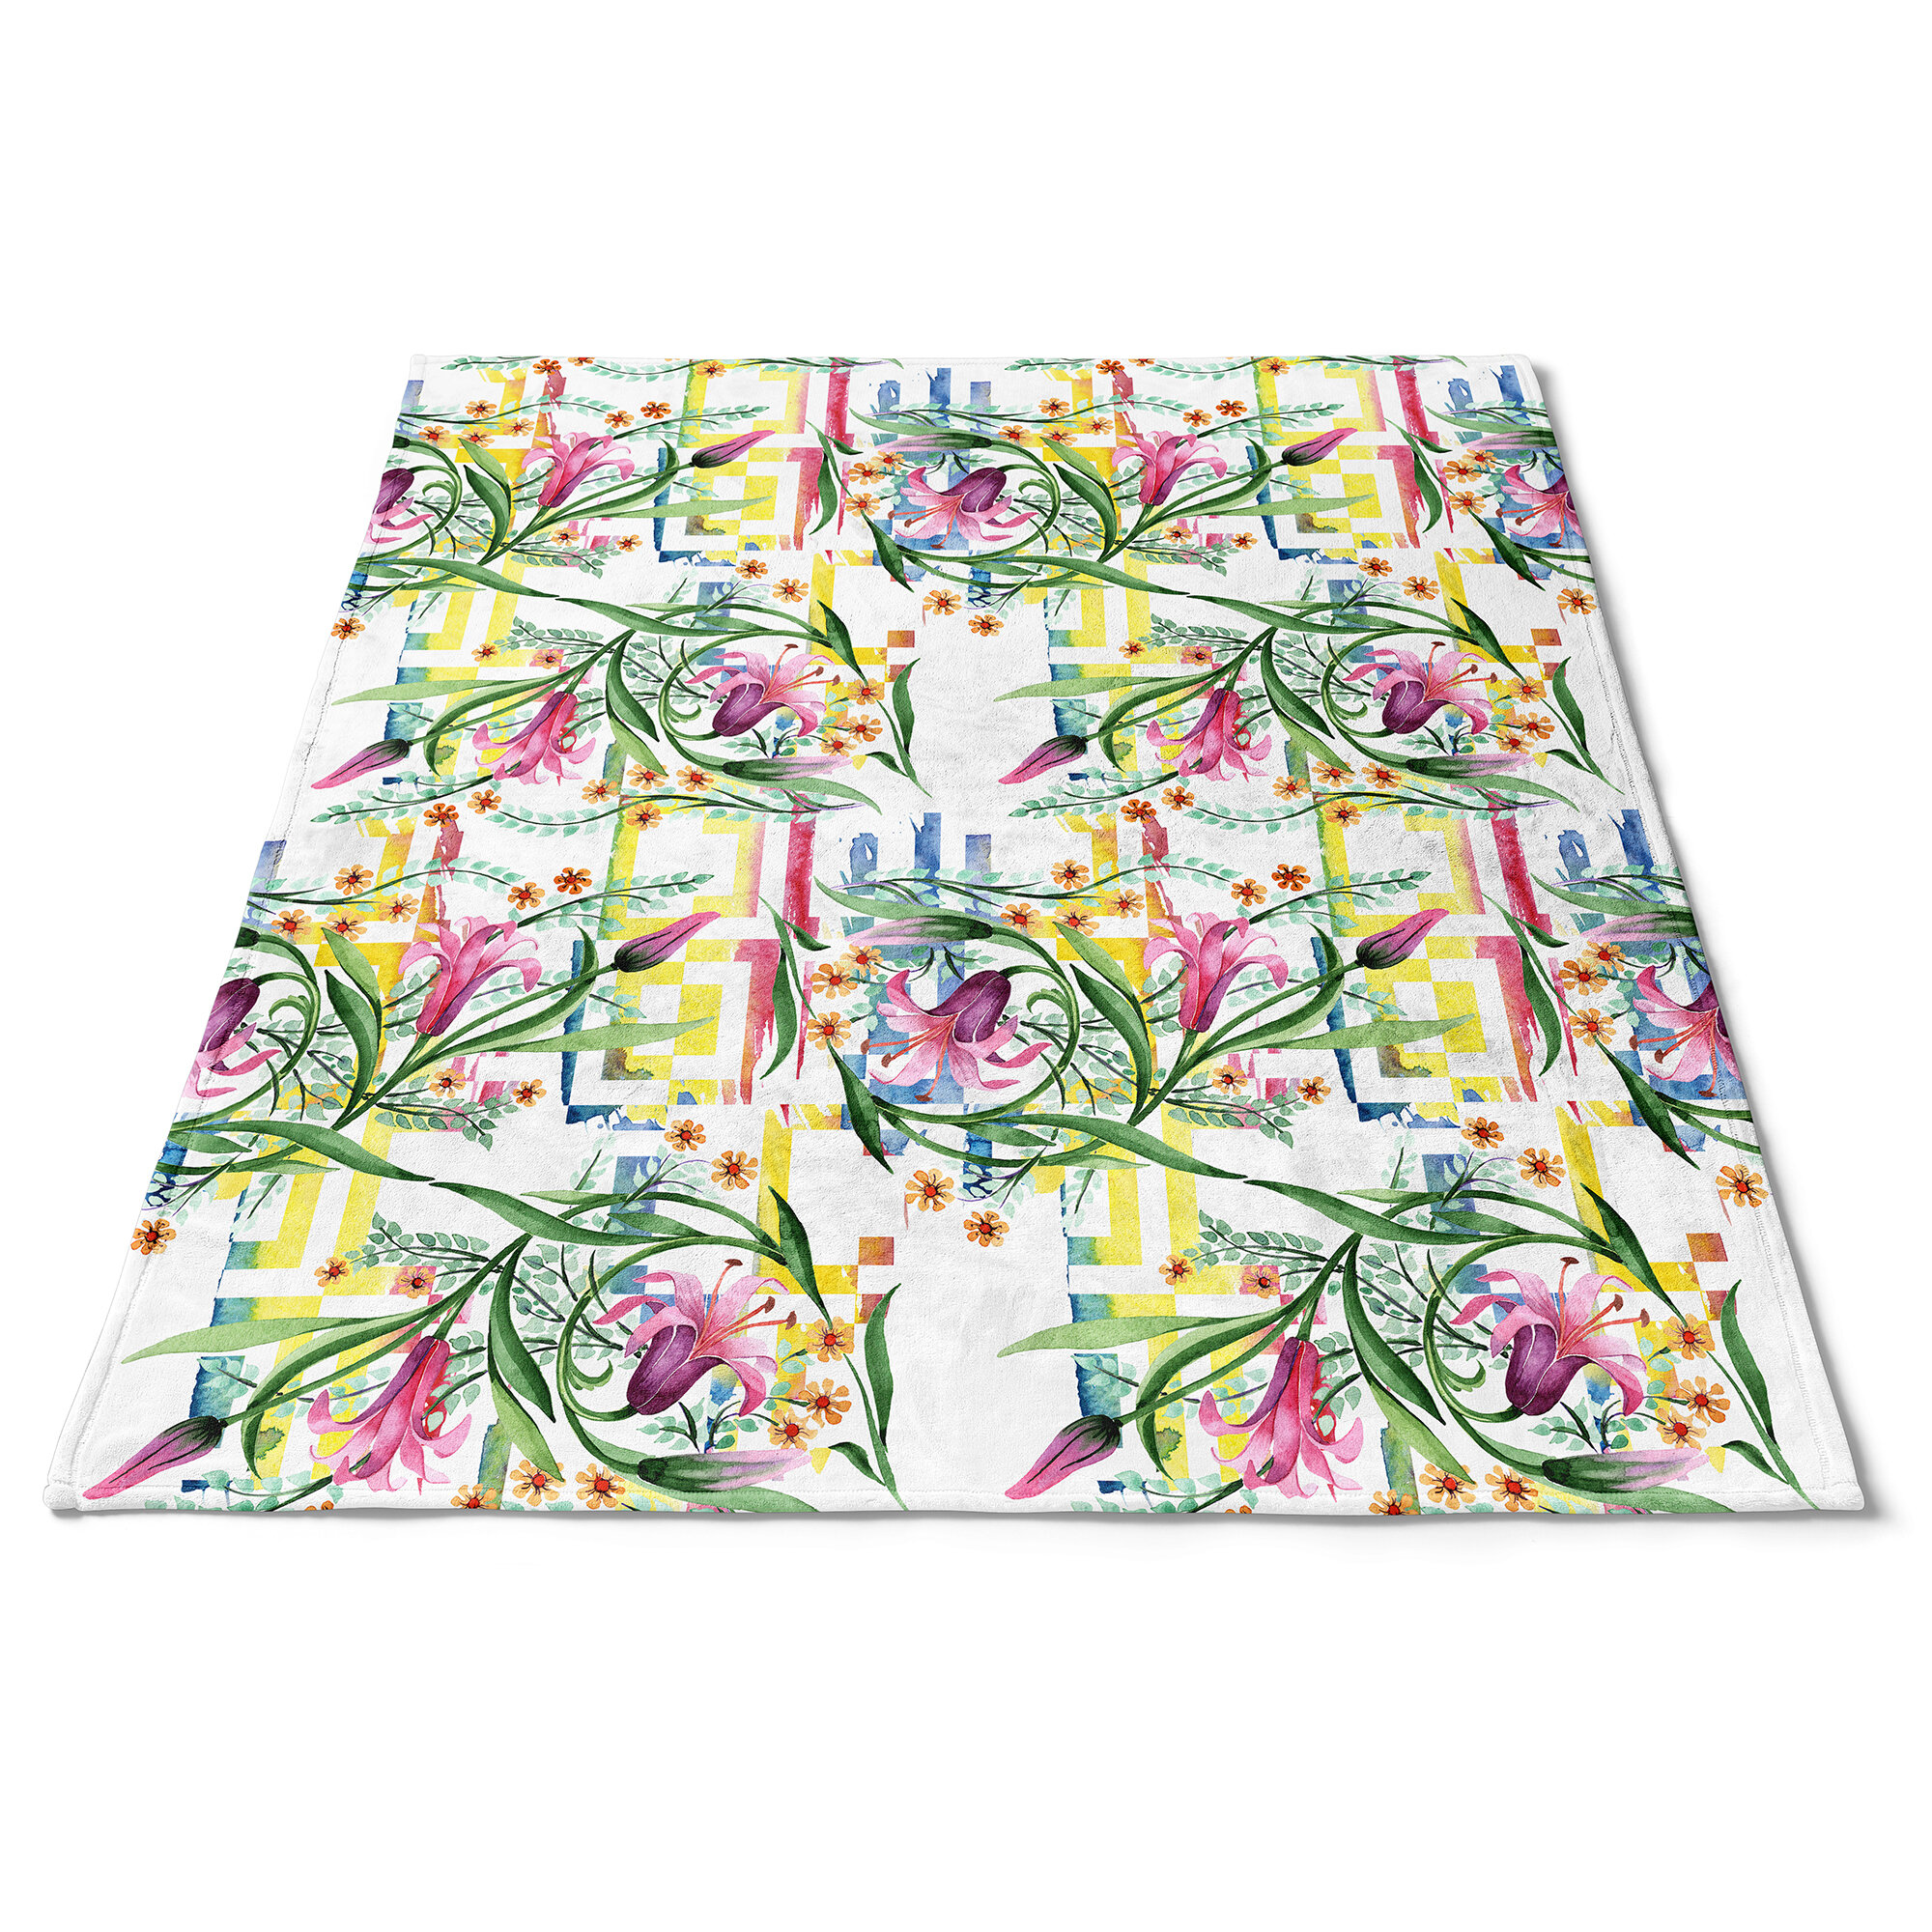 East Urban Home Floral Botanical Retro Xi Blanket Wayfair